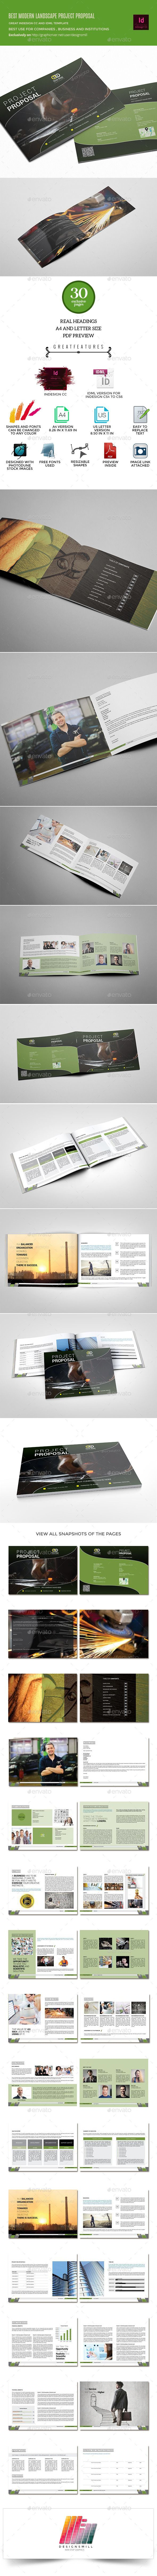 Three Rings Project Proposal Template